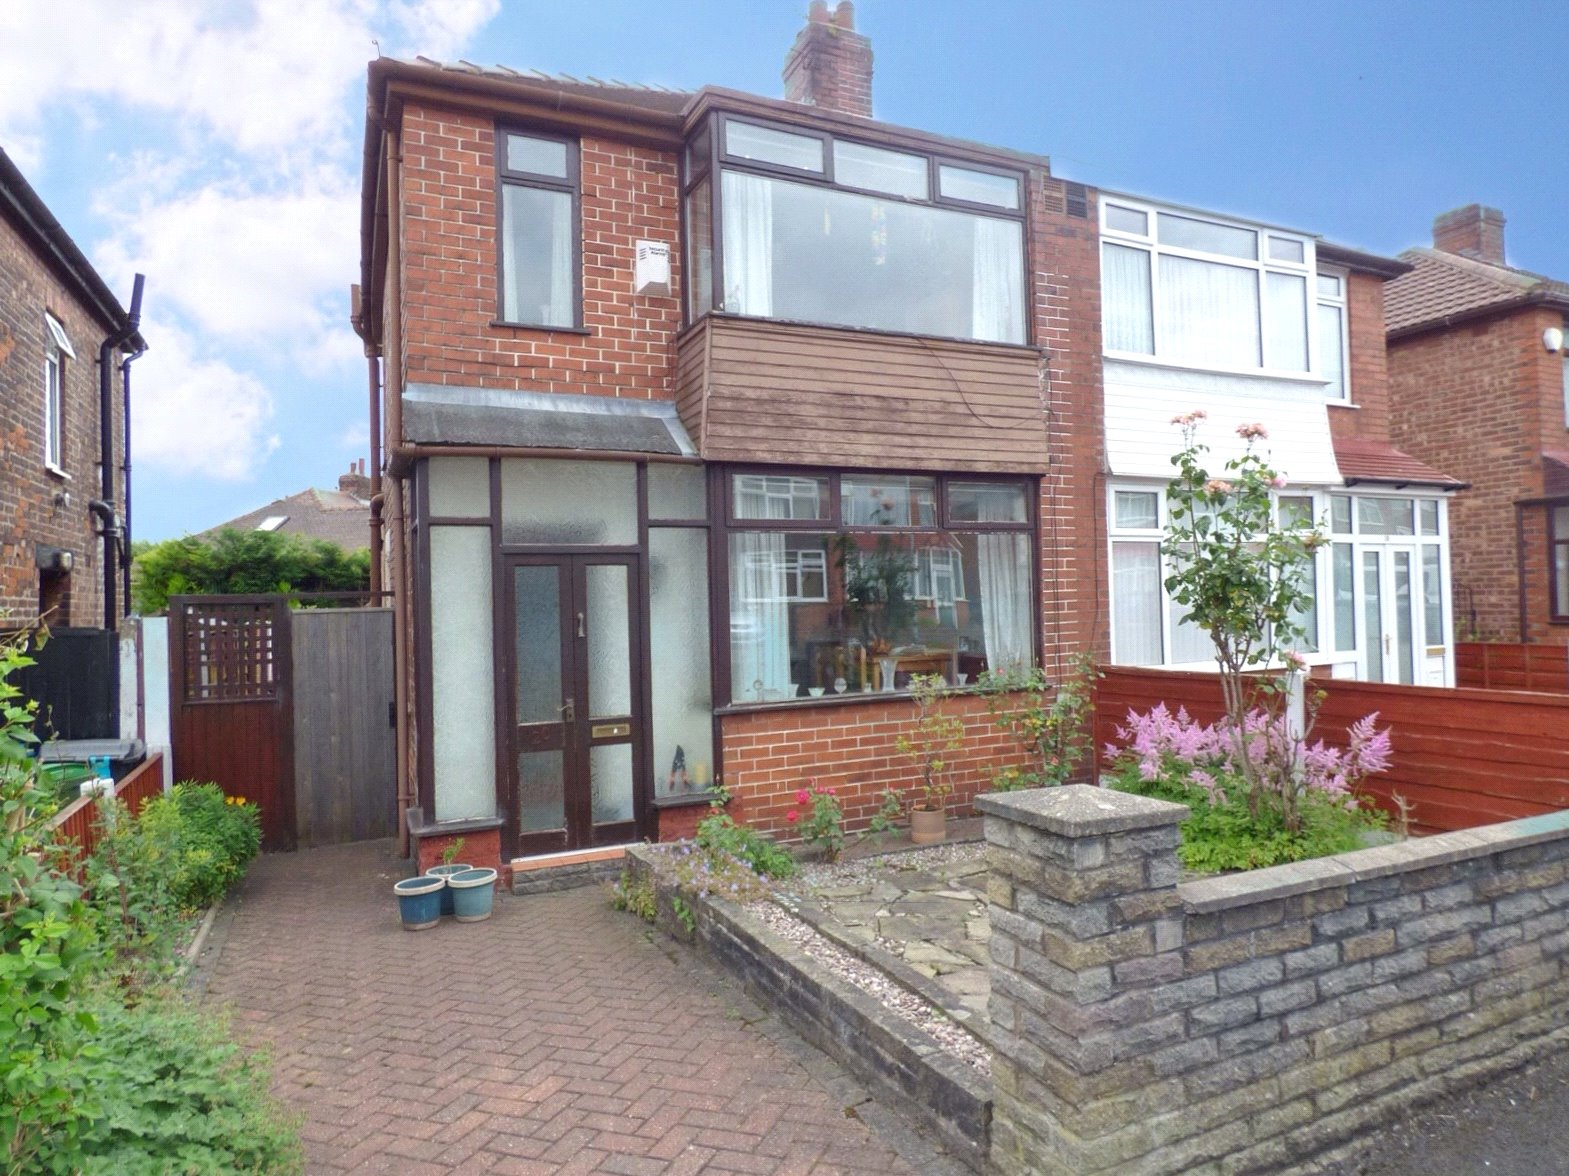 3 Bedrooms Semi Detached House for sale in Welbeck Avenue, Chadderton, Oldham, OL9